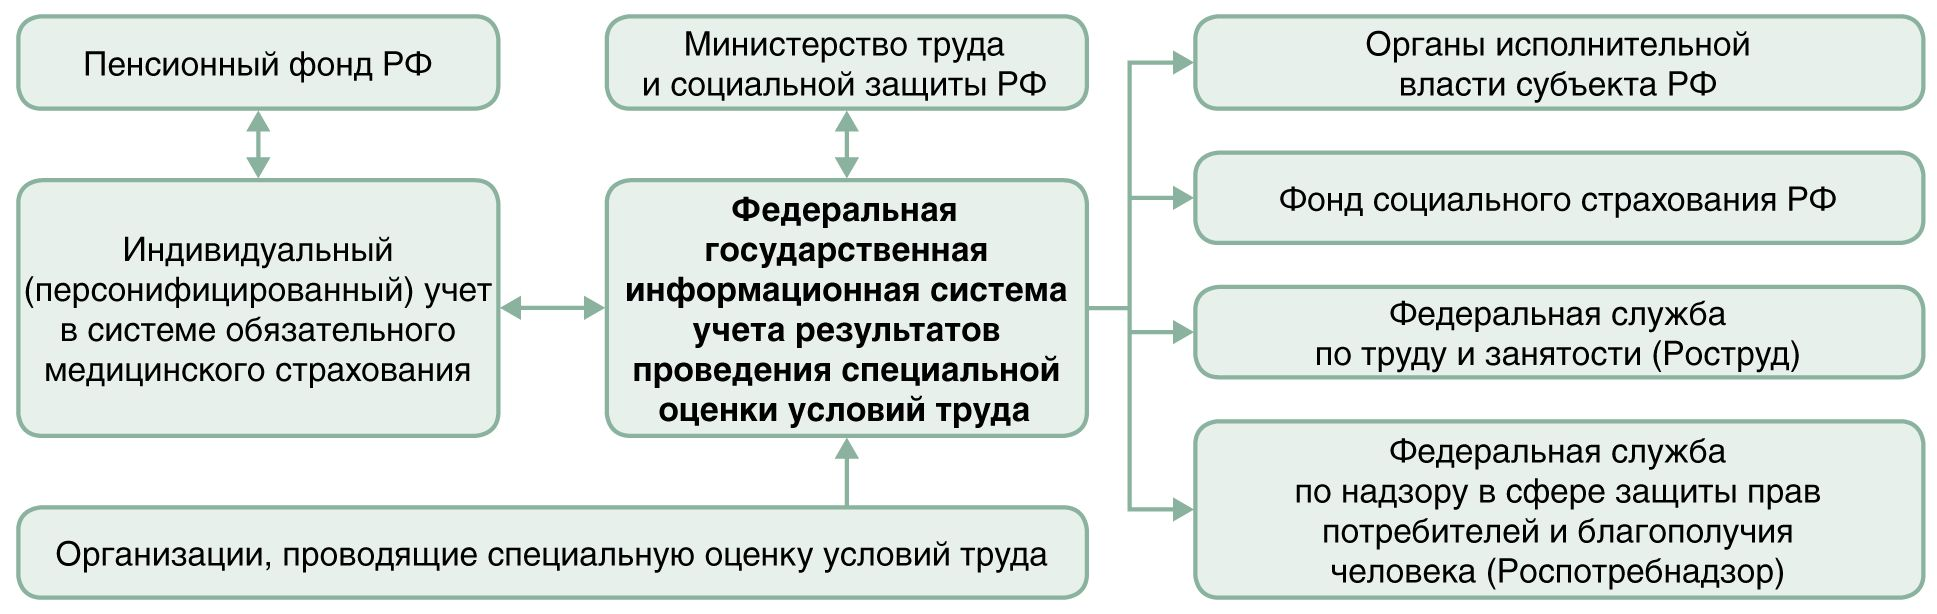 http://e.profkiosk.ru/service_tbn2/resize/zoom/594x846/0yqasy.png